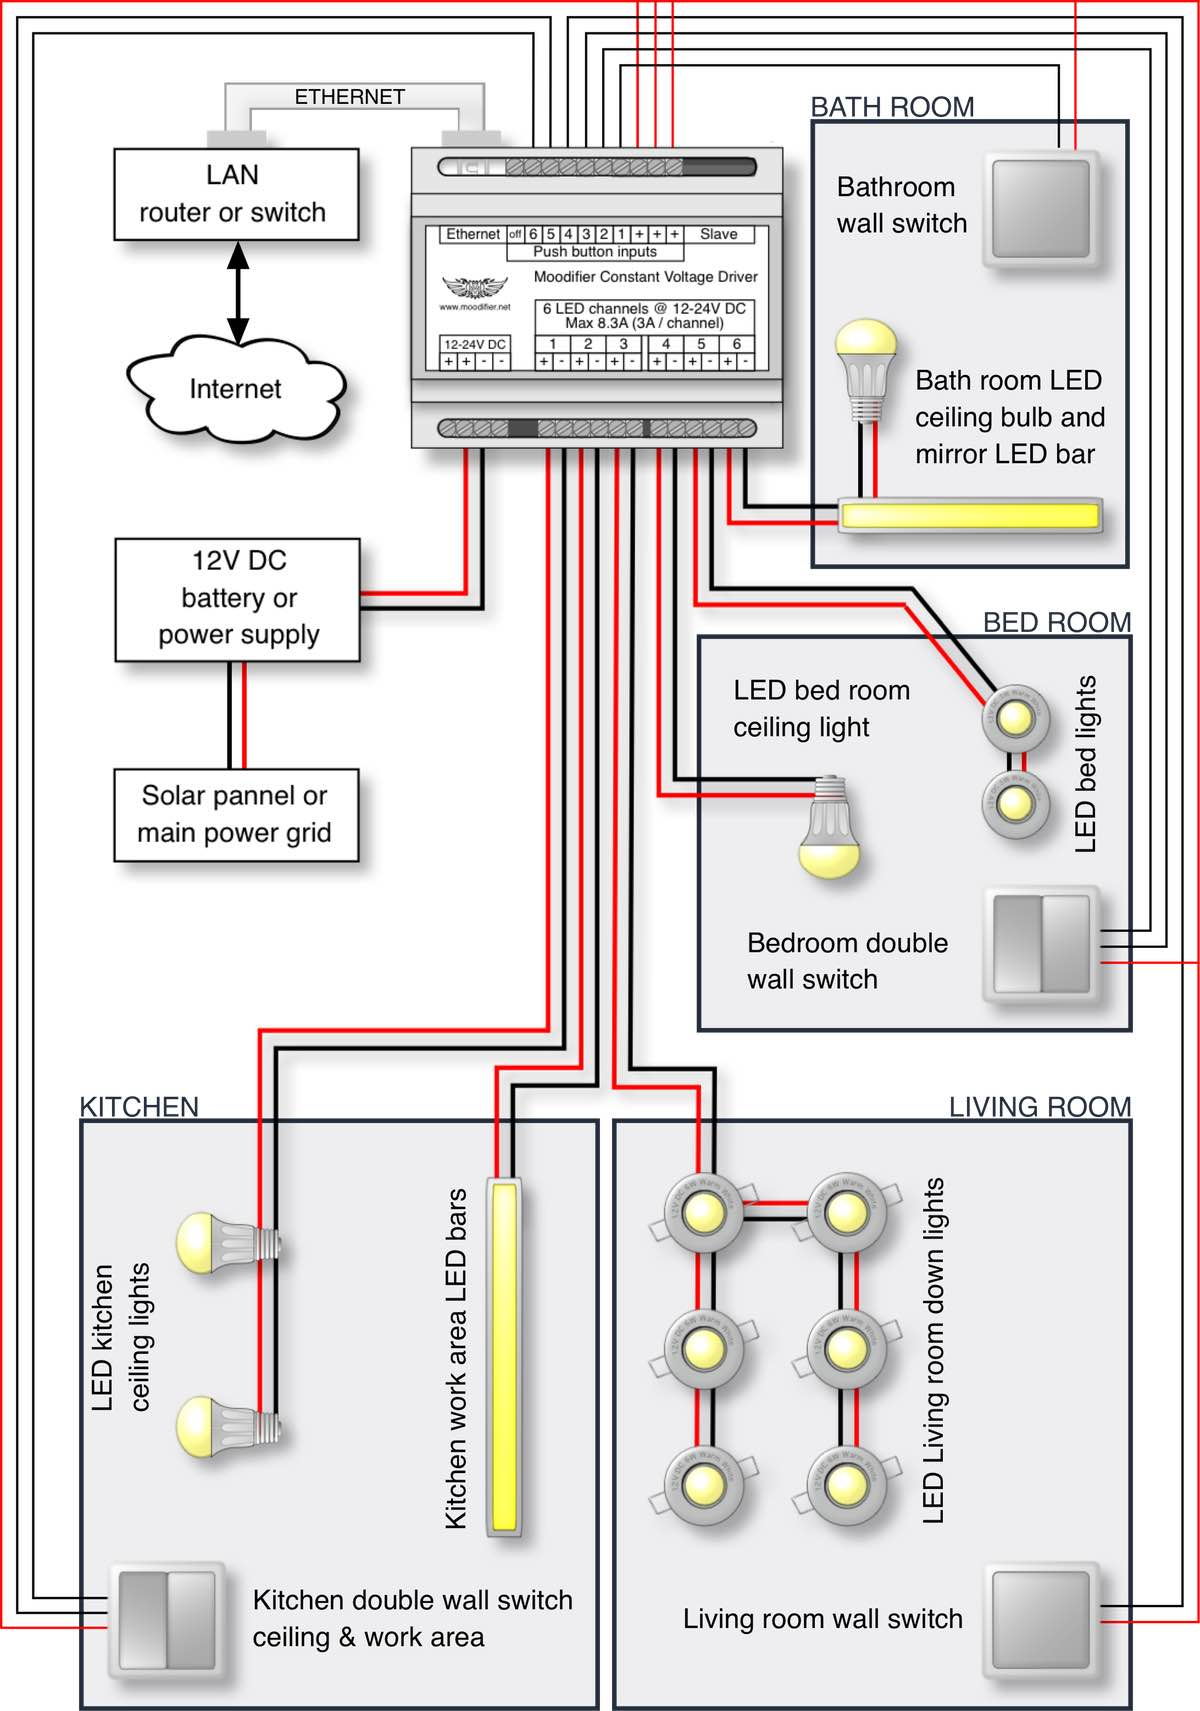 Sensational Light Bar Wiring Diagram 24V Wiring Diagram Tutorial Wiring Cloud Hemtshollocom